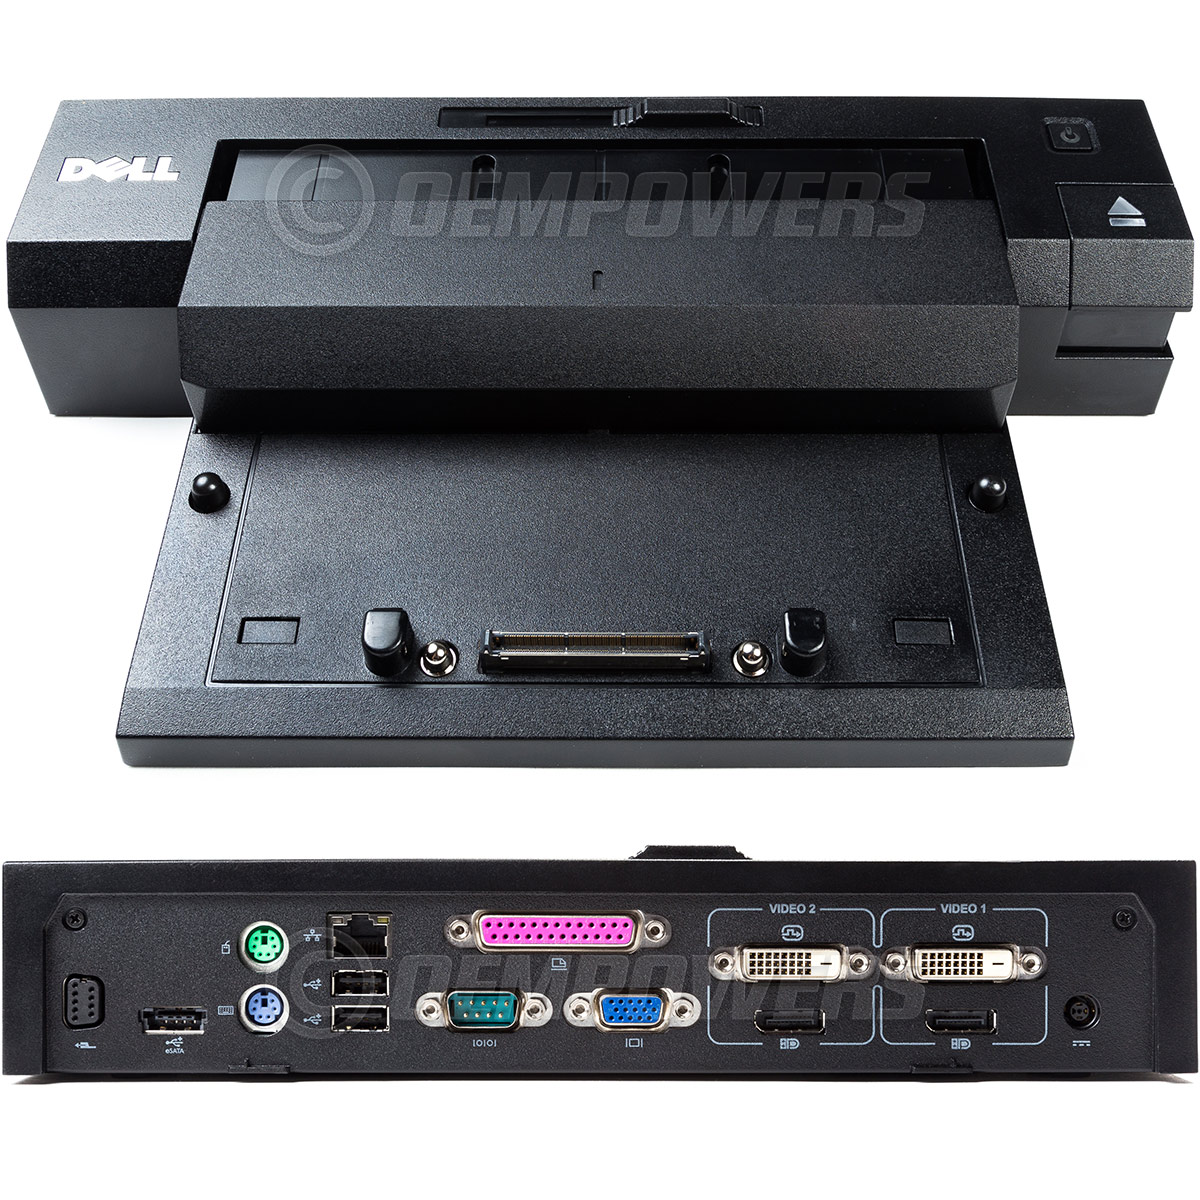 DELL DOCKING STATION PR02X WINDOWS 8.1 DRIVER DOWNLOAD